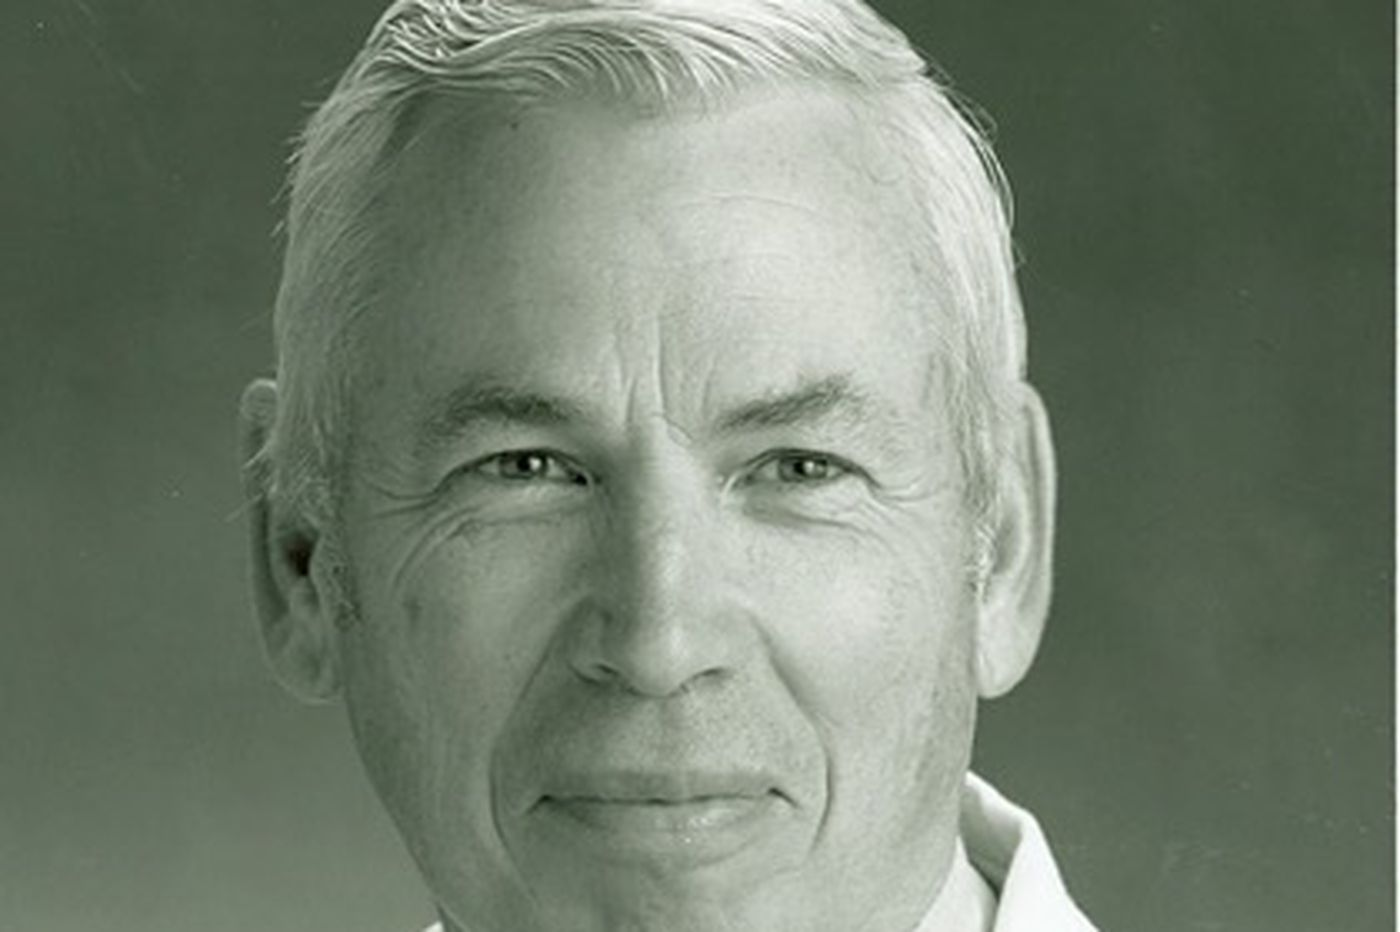 Denis S. Drummond, 84, noted spine surgeon and chief of orthopedics at CHOP